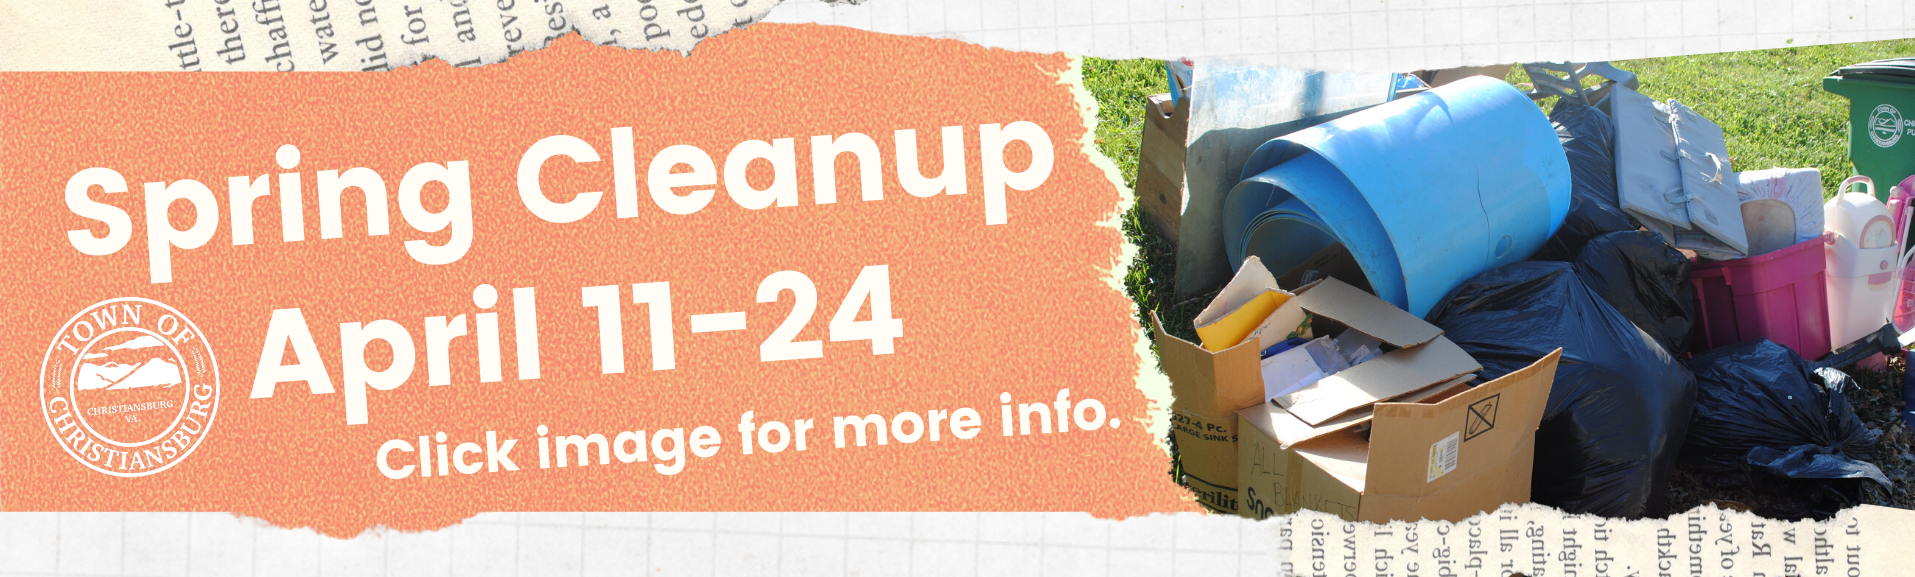 Spring Cleanup April 11-24, click image for more details.